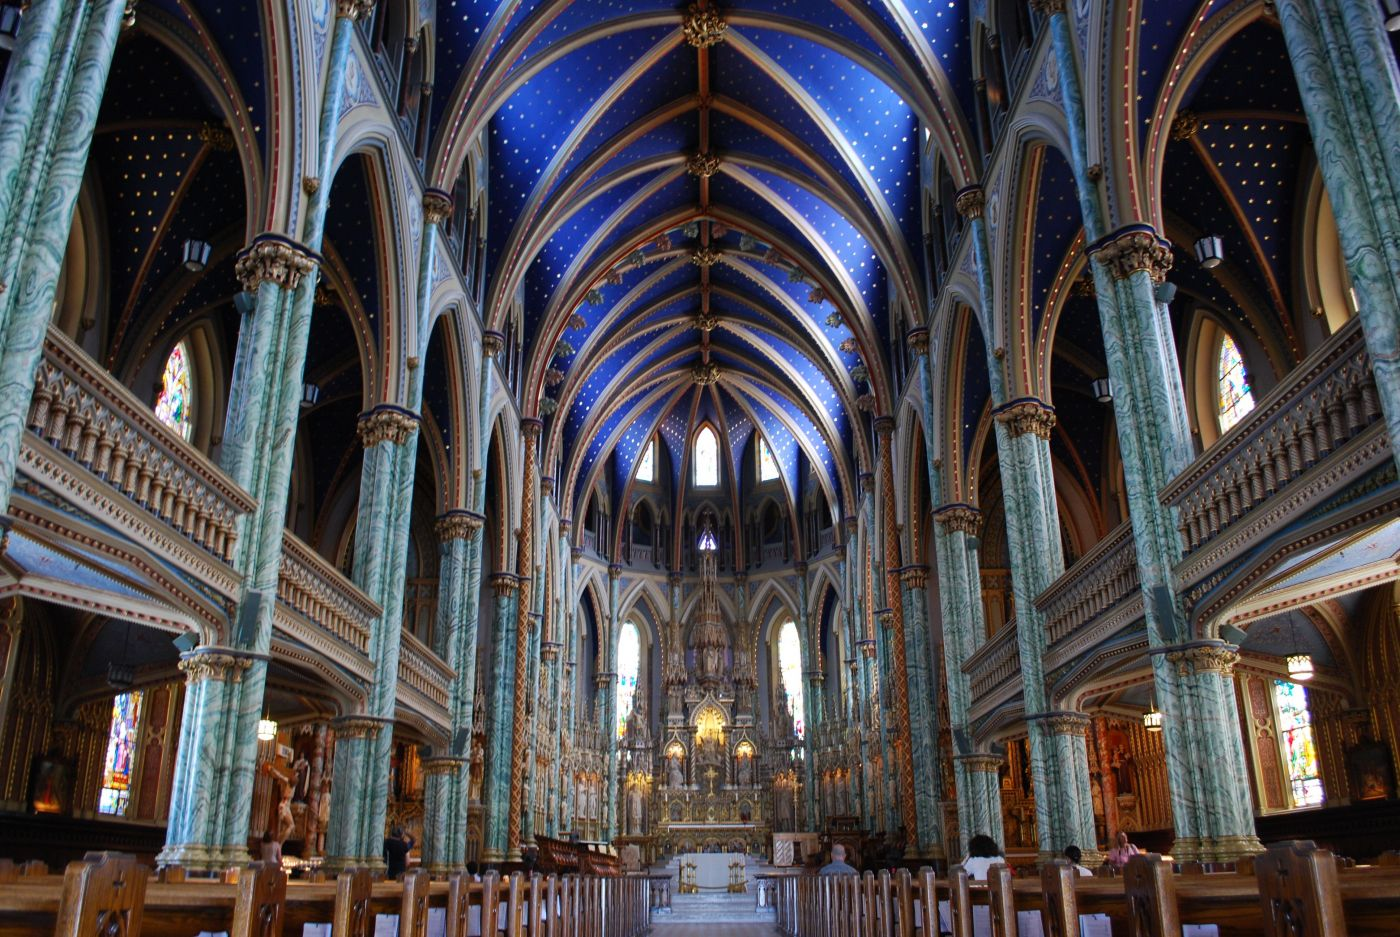 Colour photograph of the interior of a neo-Gothic-style church. Columns of green and white marble line the nave on each side. The vaulted ceiling is painted blue. The sanctuary is richly carved.